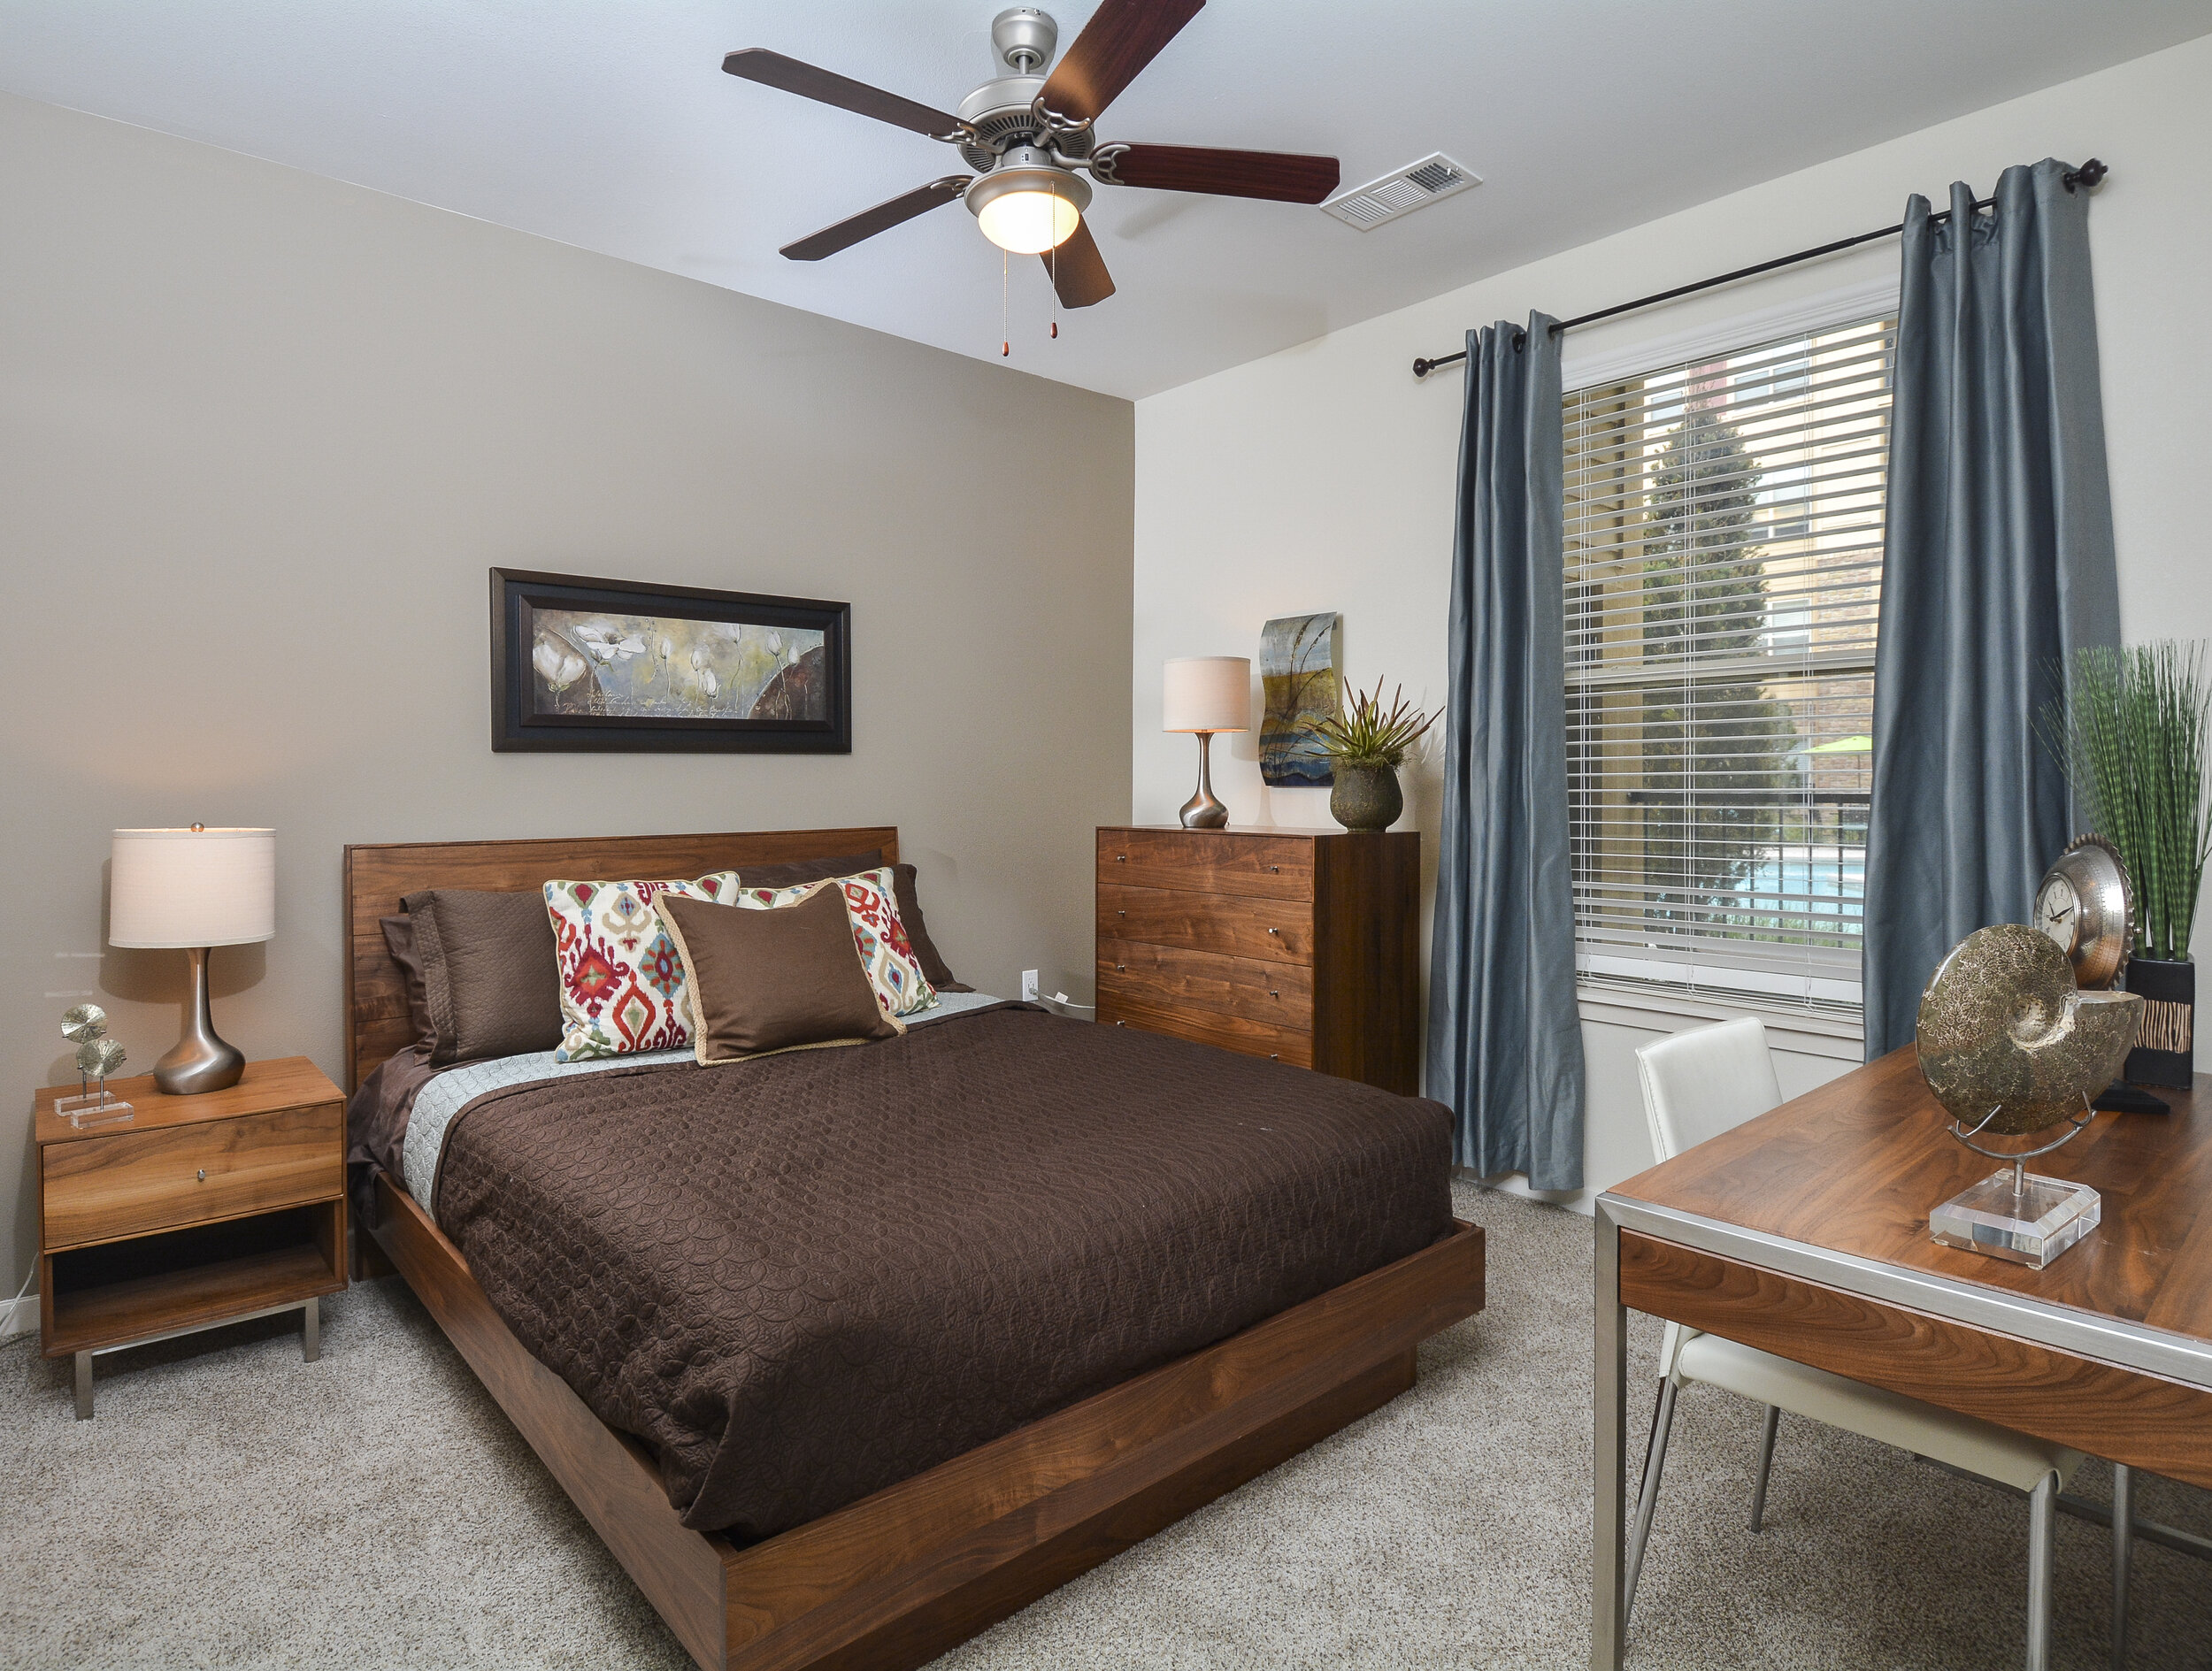 07 Naturally Lit & Expansive Bedrooms.jpg